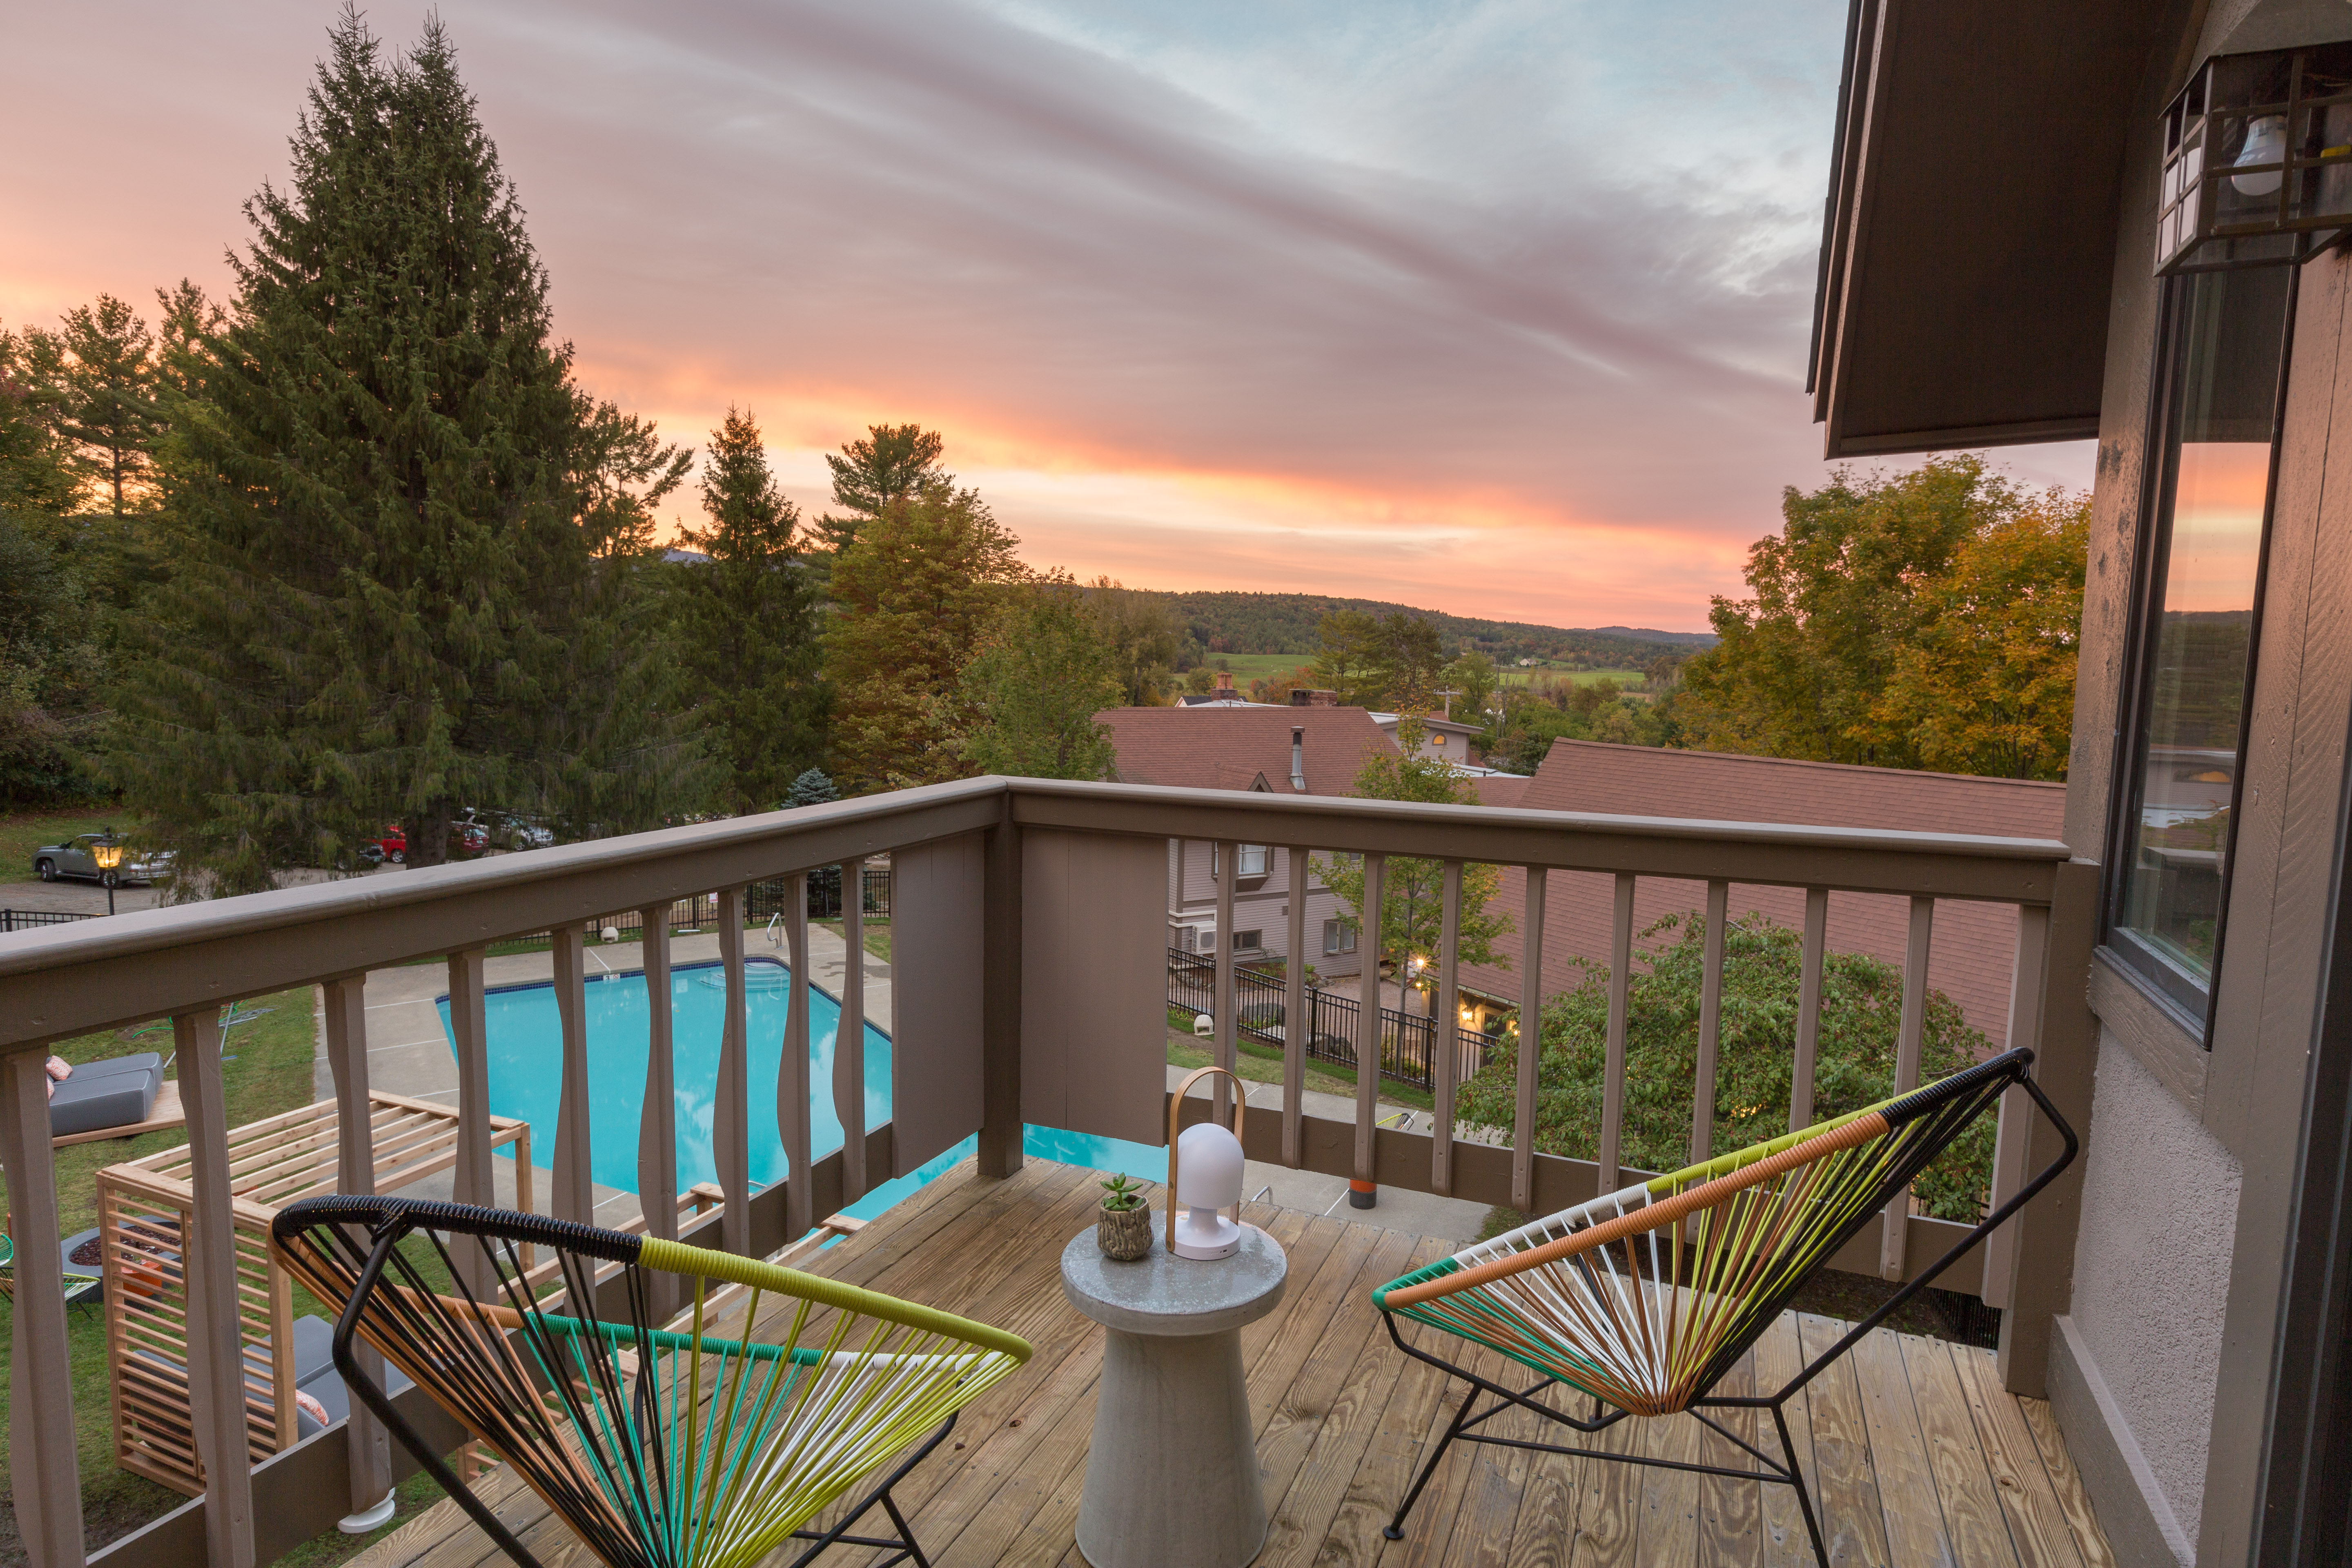 Where to Stay in Stowe, VT | Hotels, Inns \u0026 Resorts - New England ...